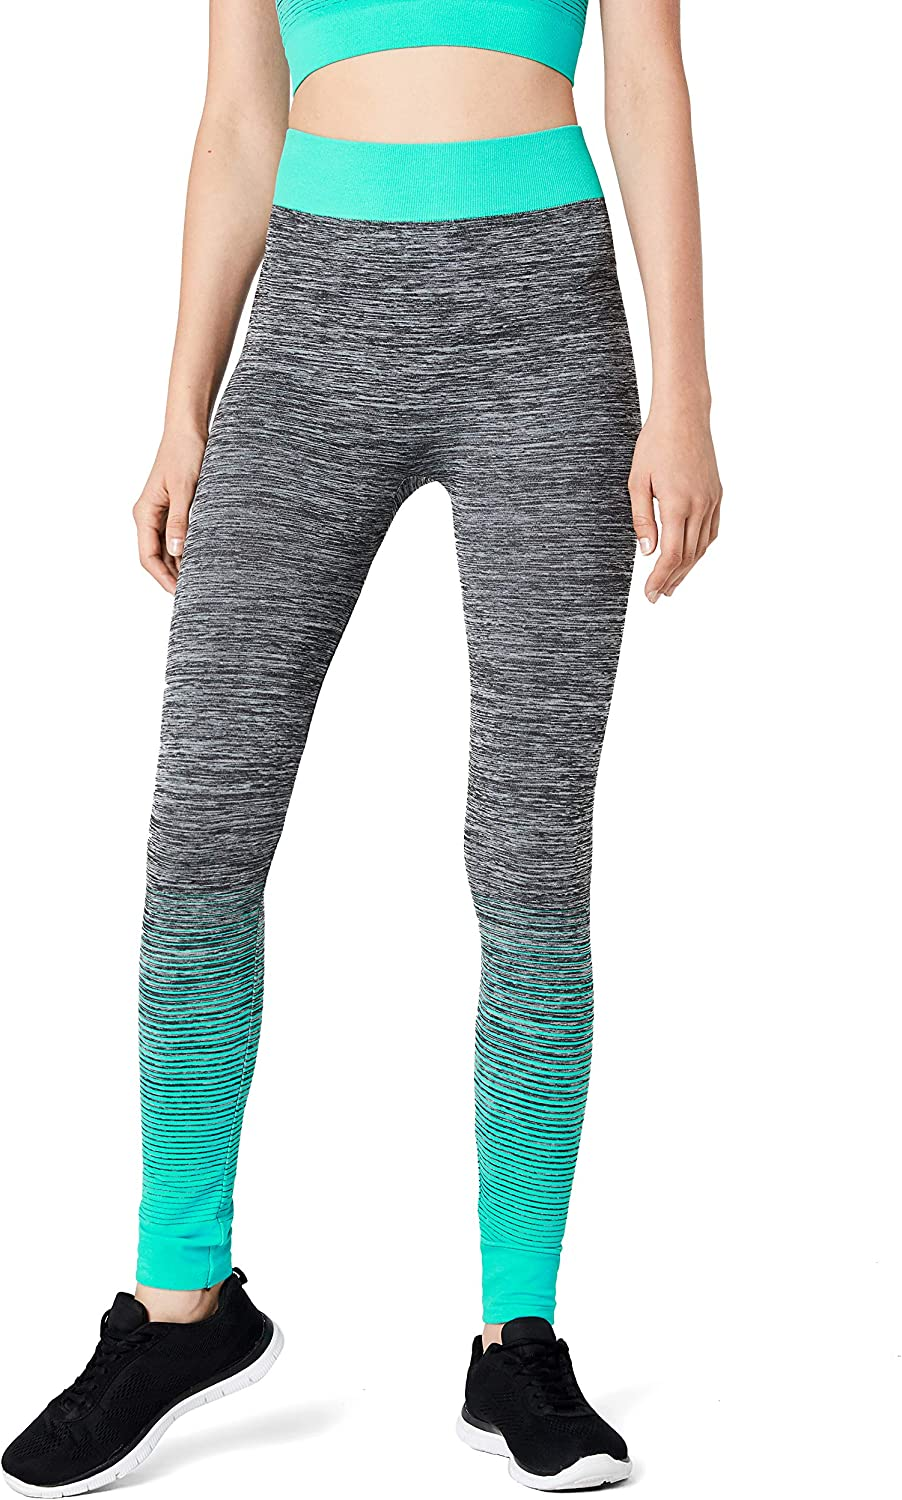 FM London Crop Top and Leggings Conjunto ropa deportiva para Mujer